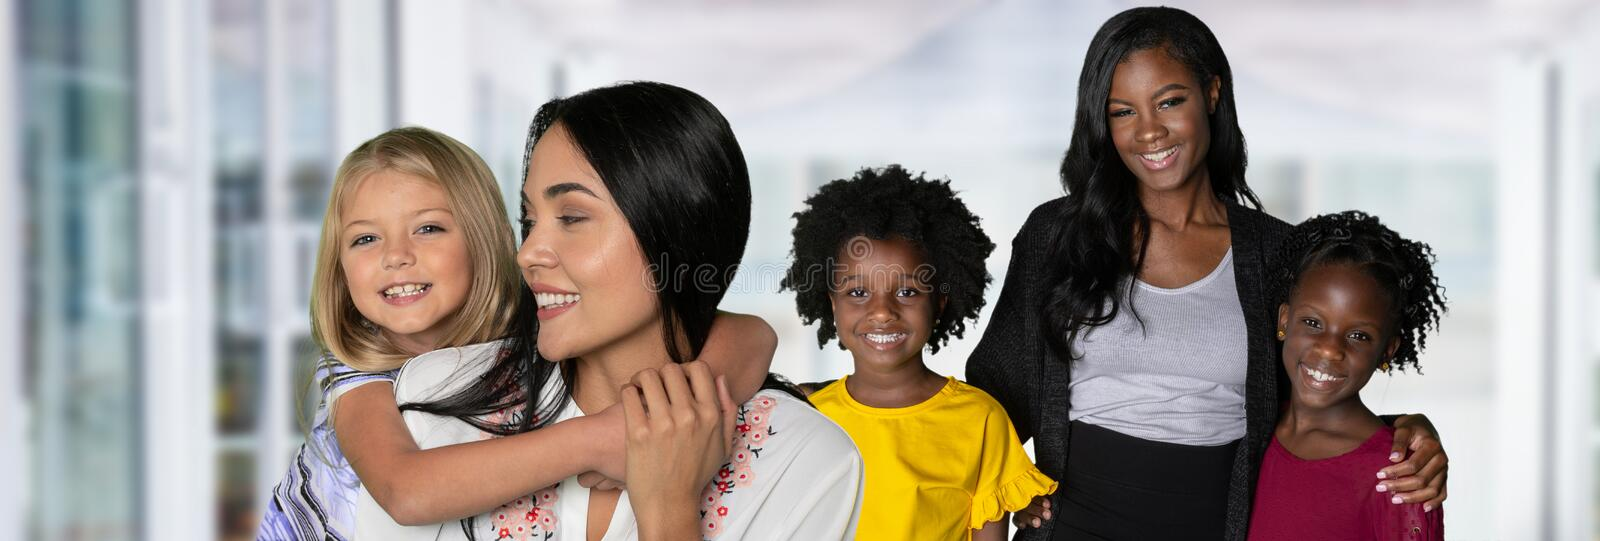 Group Of Families. Group of happy diverse families posing together stock images